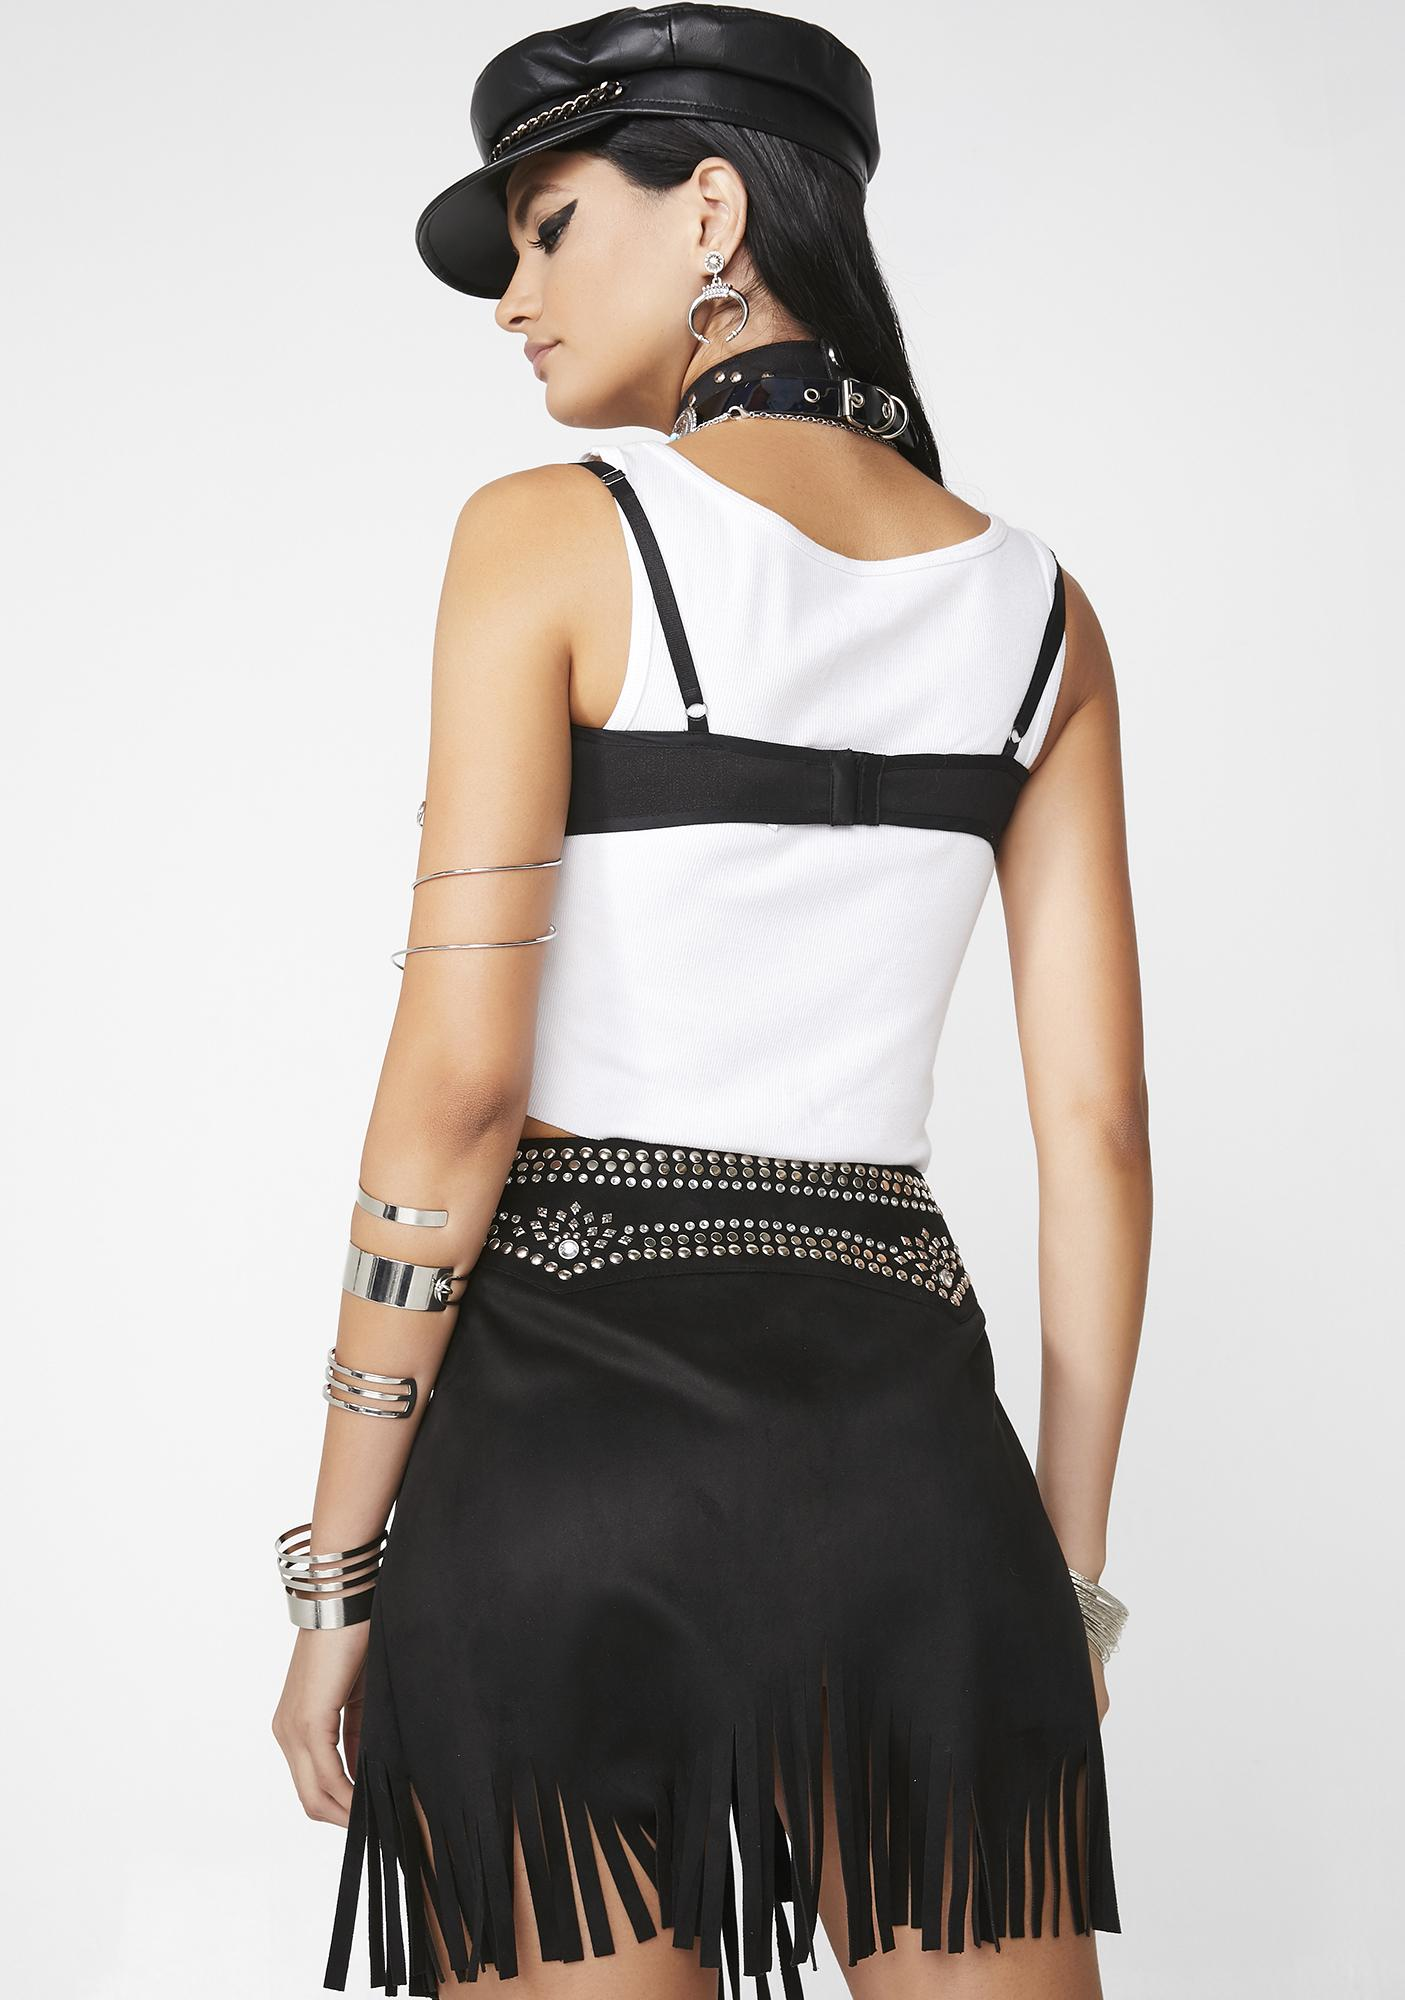 Club Exx Dust Frenzy Studded Skirt